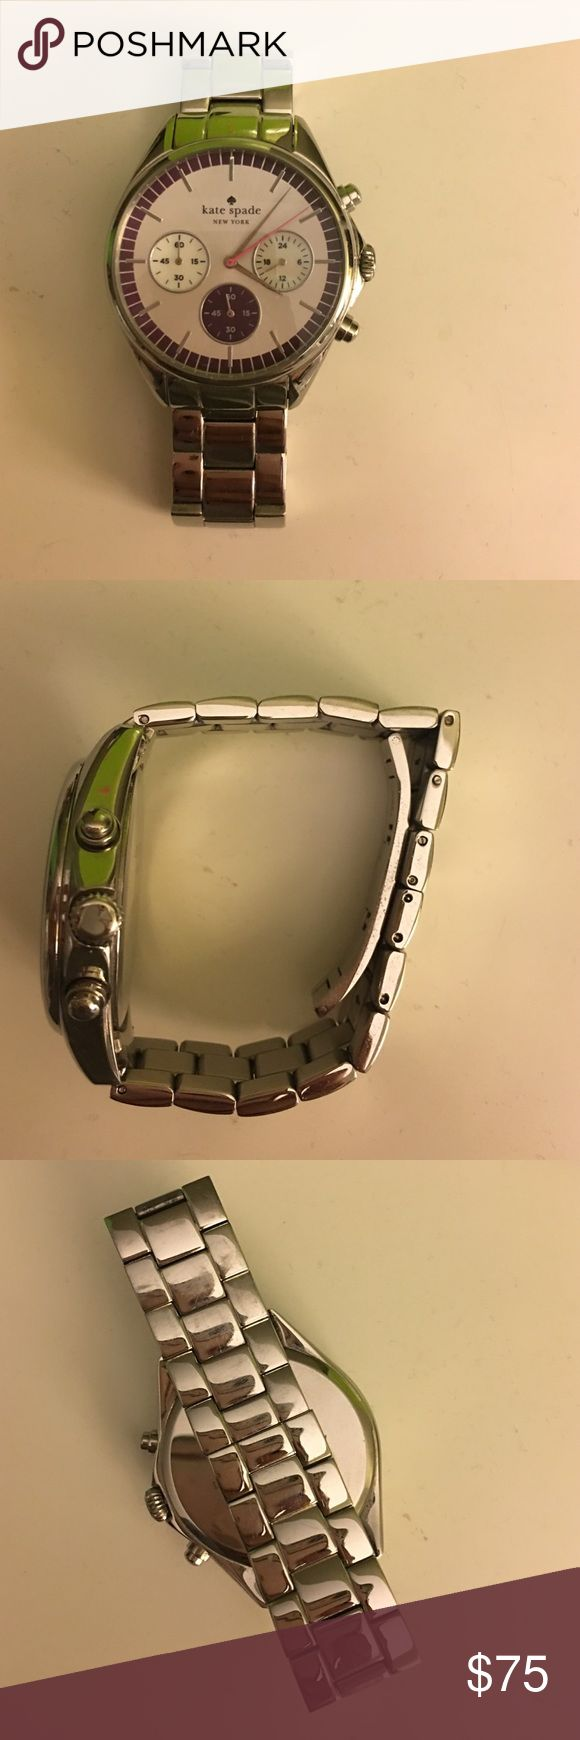 Silver Kate spade watch Excellent condition silver Kate spade watch with dark purple details. Links have been removed but the original box, Manuel, and extra links are included. Battery still works! kate spade Accessories Watches